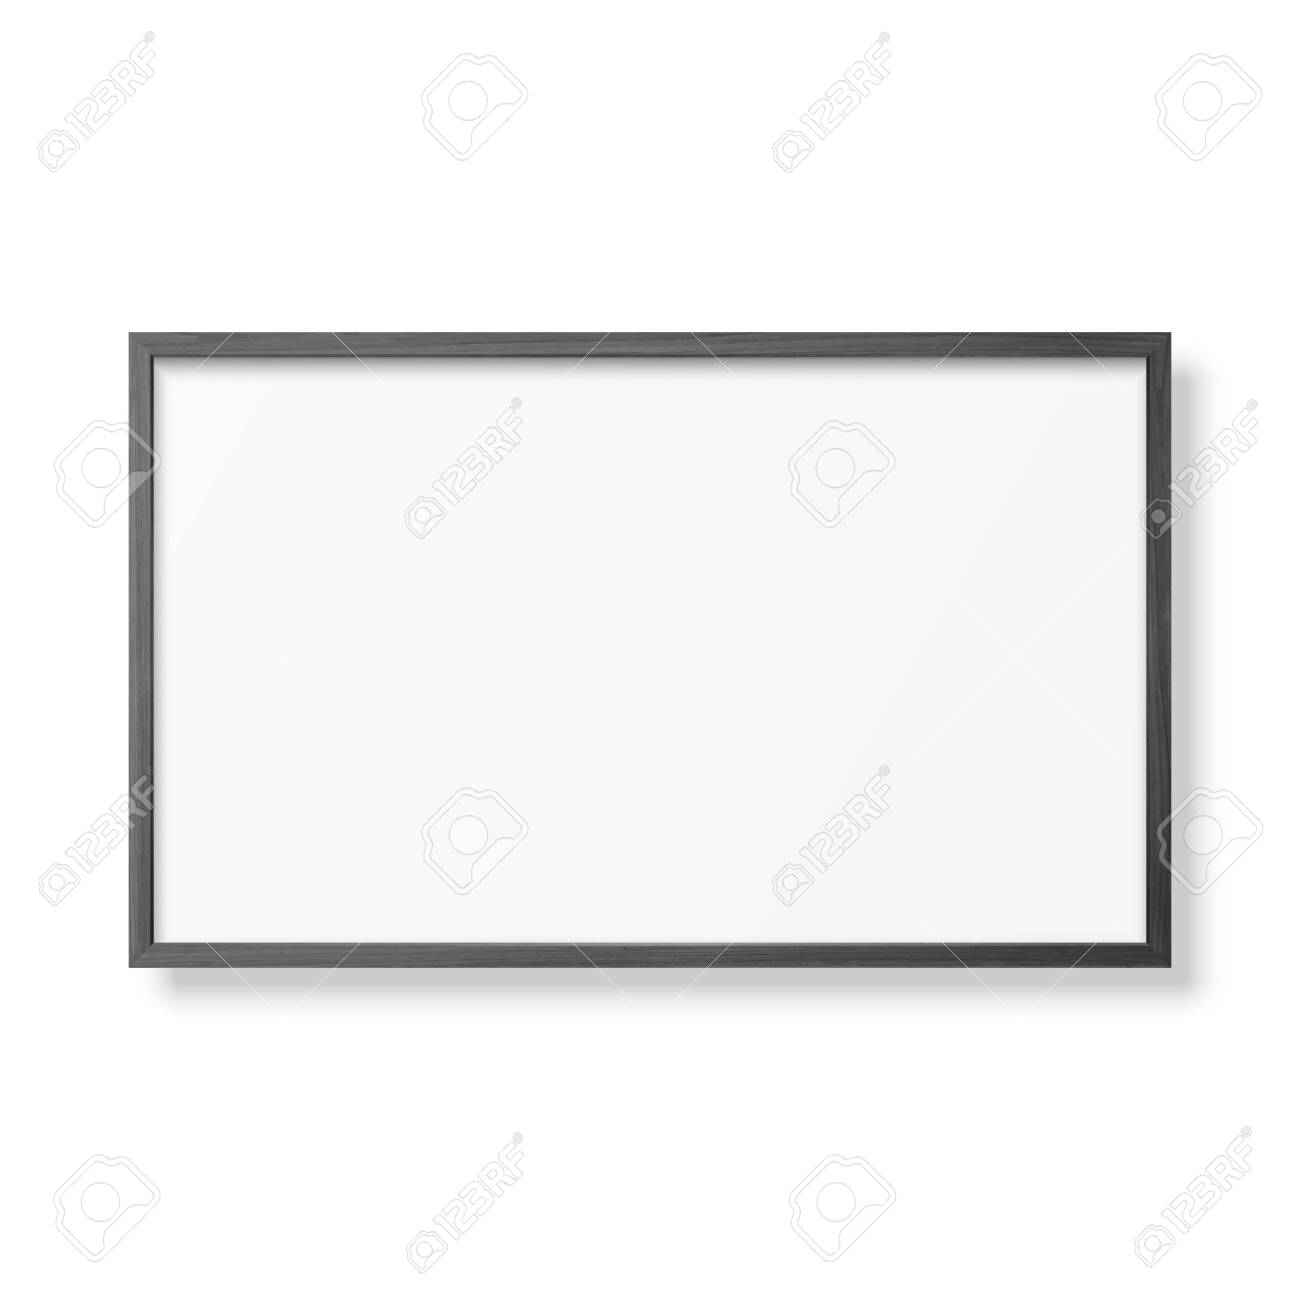 Vector 3d Realistic Horizontal Black Wooden Simple Modern Frame Icon Closeup Isolated on White. It can be used for presentations. Design Template for Mockup, Front View - 152739224